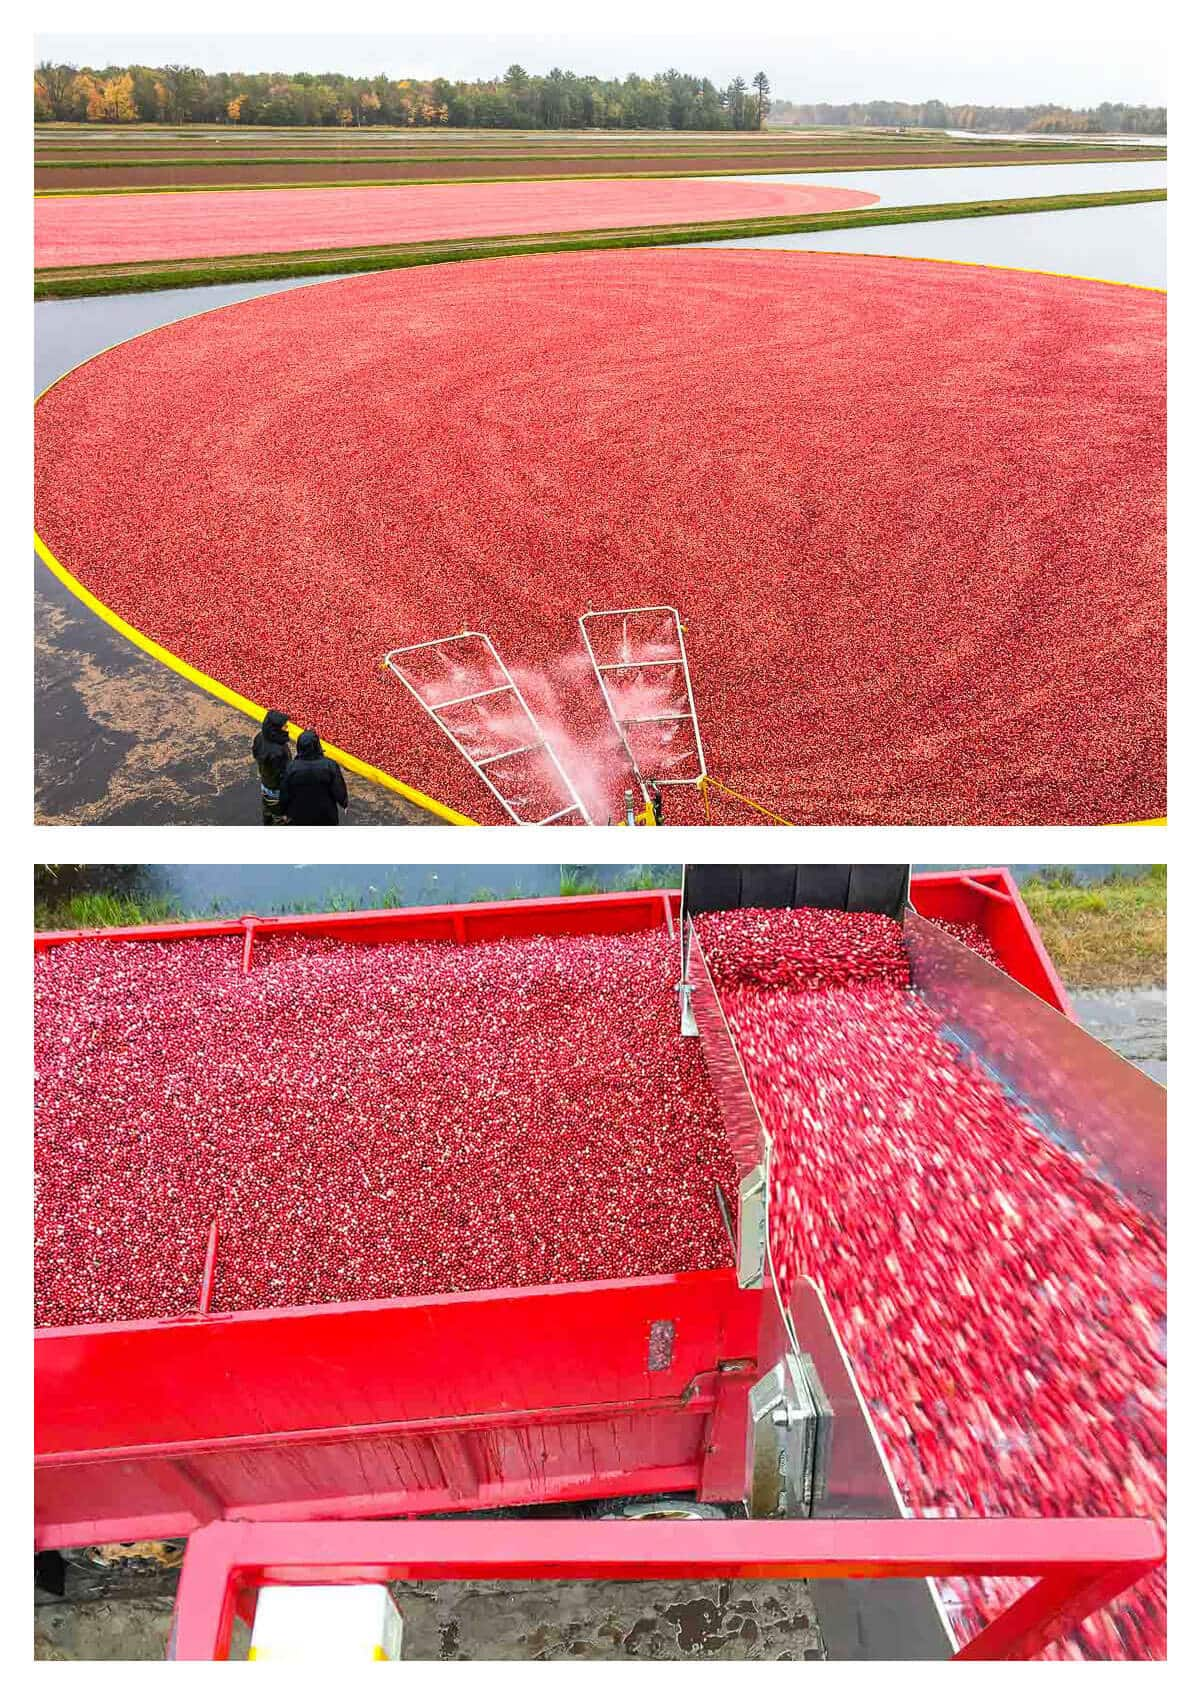 Cranberries being harvested and a recipe for slow cooker Brussels sprouts with cranberries